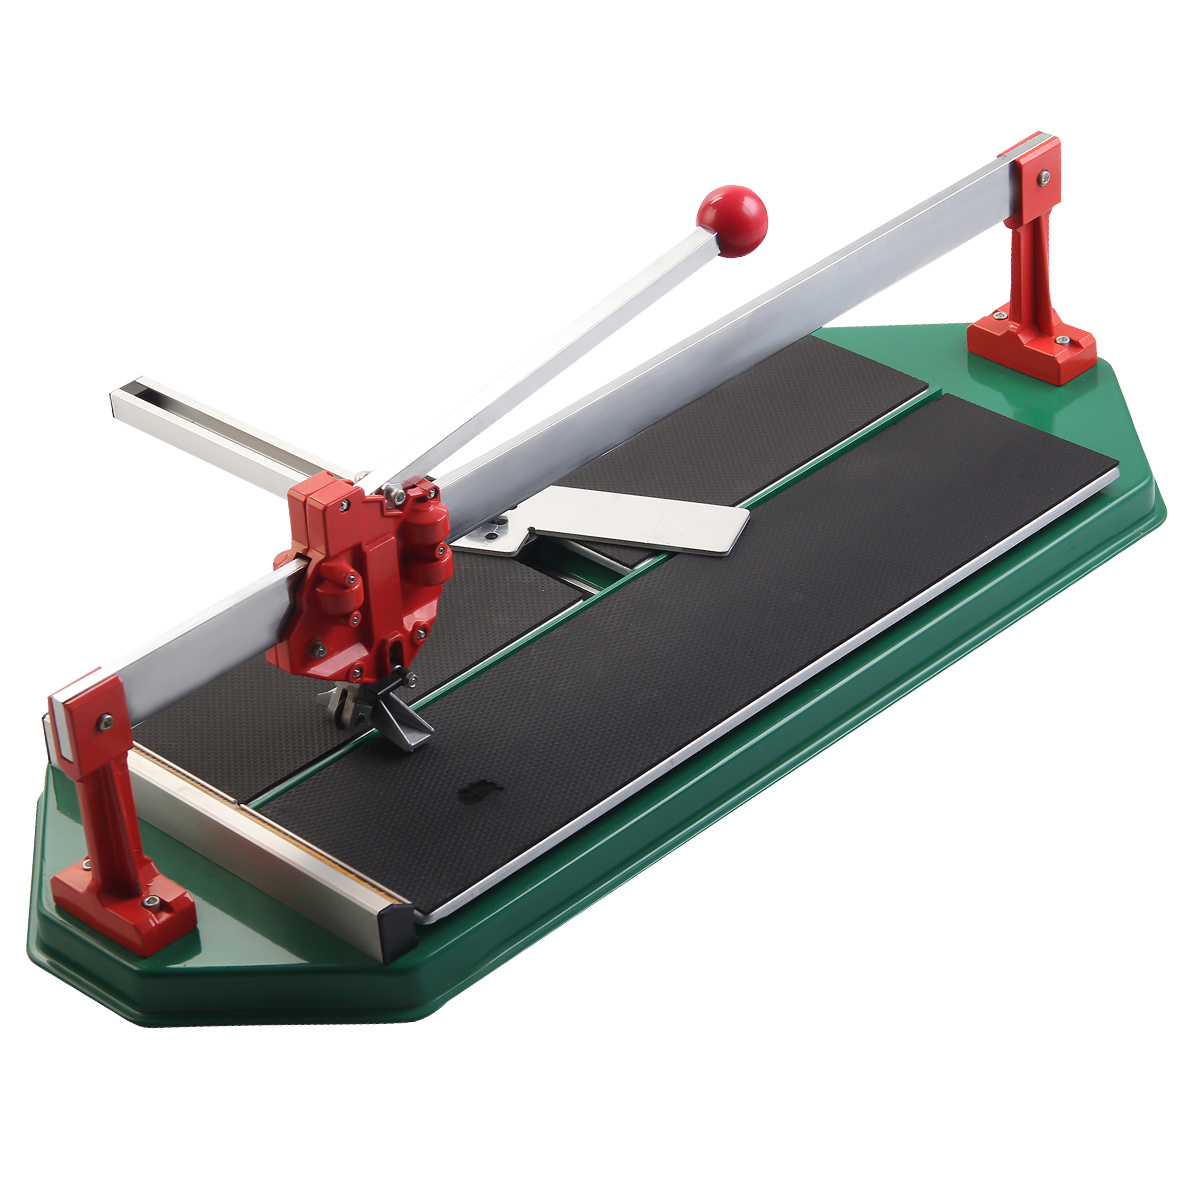 china kseibi high quality manual sigma ceramic hand tile cutter rh gzkseibi en made in china com Sigma- Aldrich MA Sigma- Aldrich Magnesium